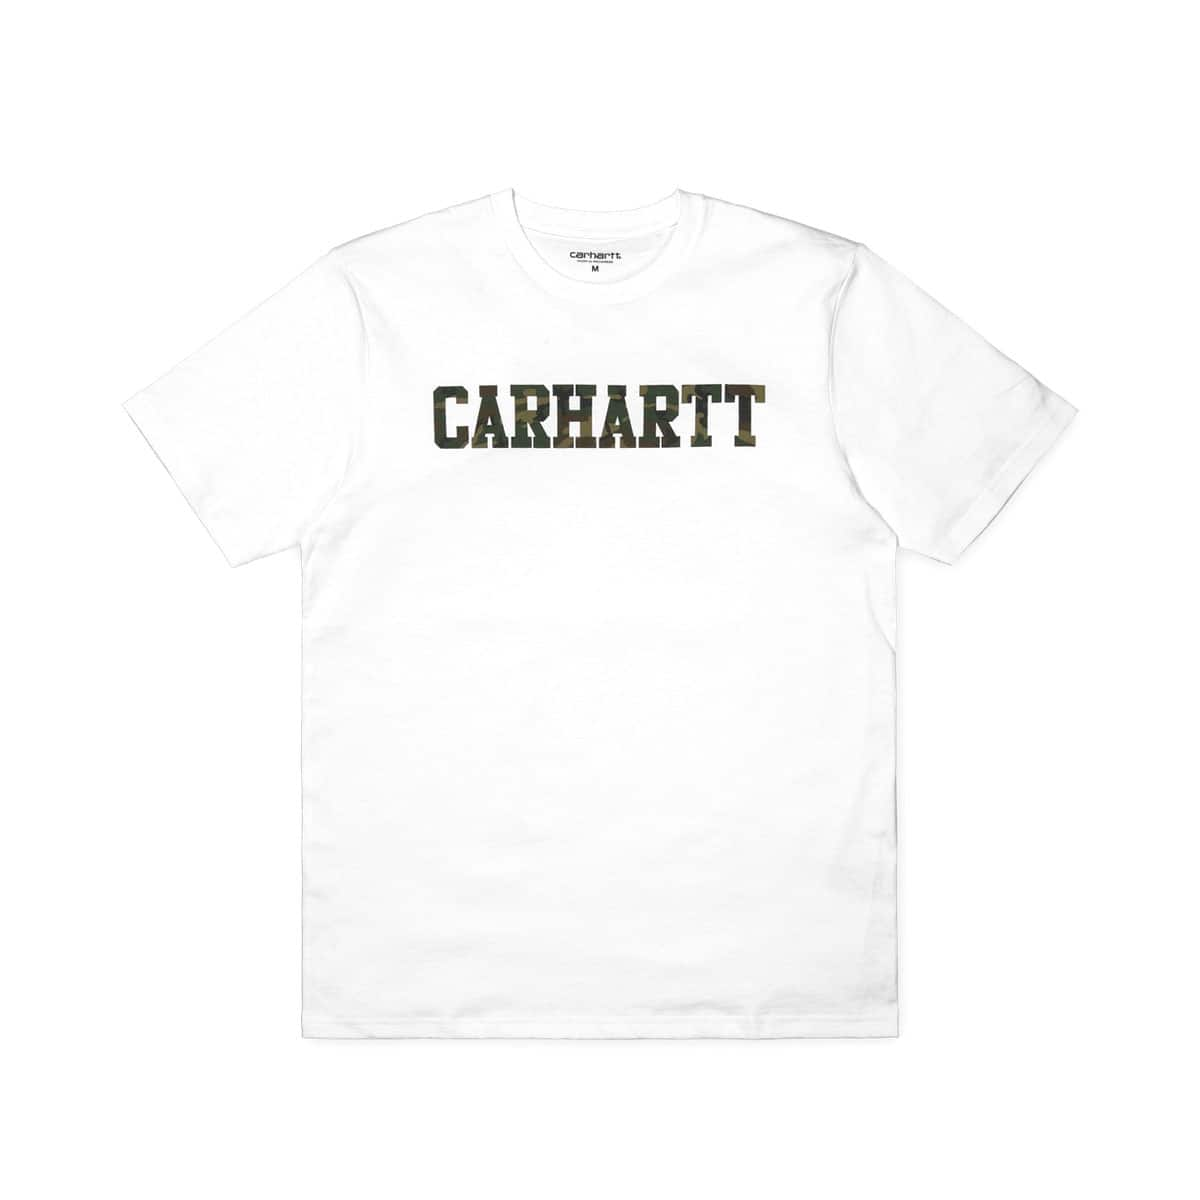 CARHARTT S/S COLLEGE T-SHIRT White/Camo 18FW-I_photo_large